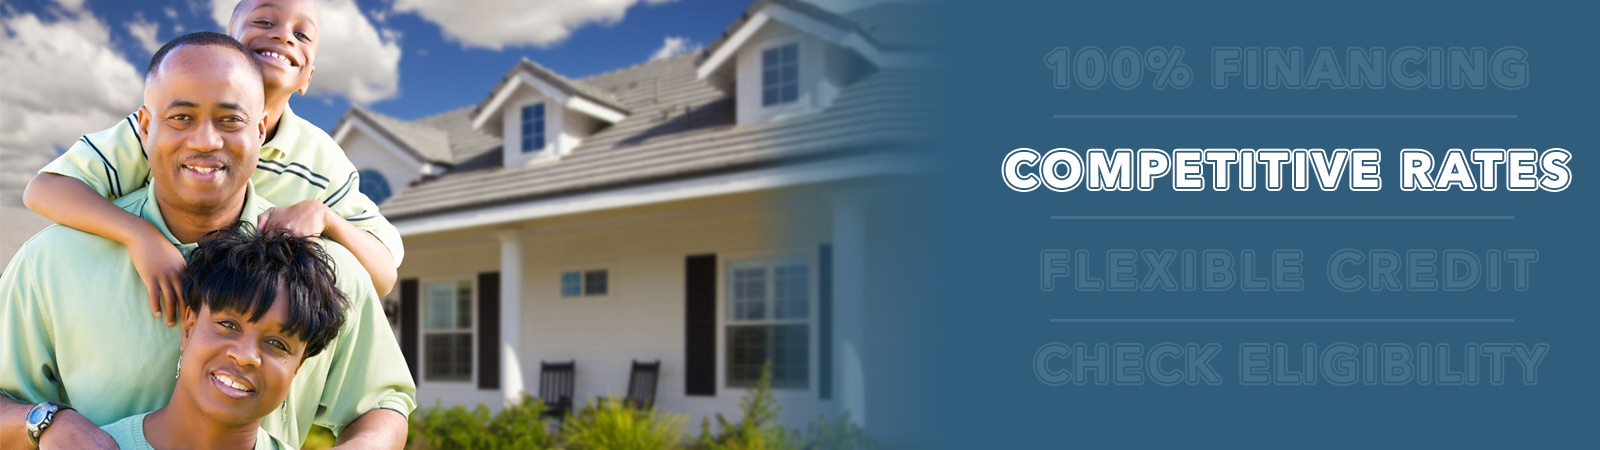 competitive mortgage rates